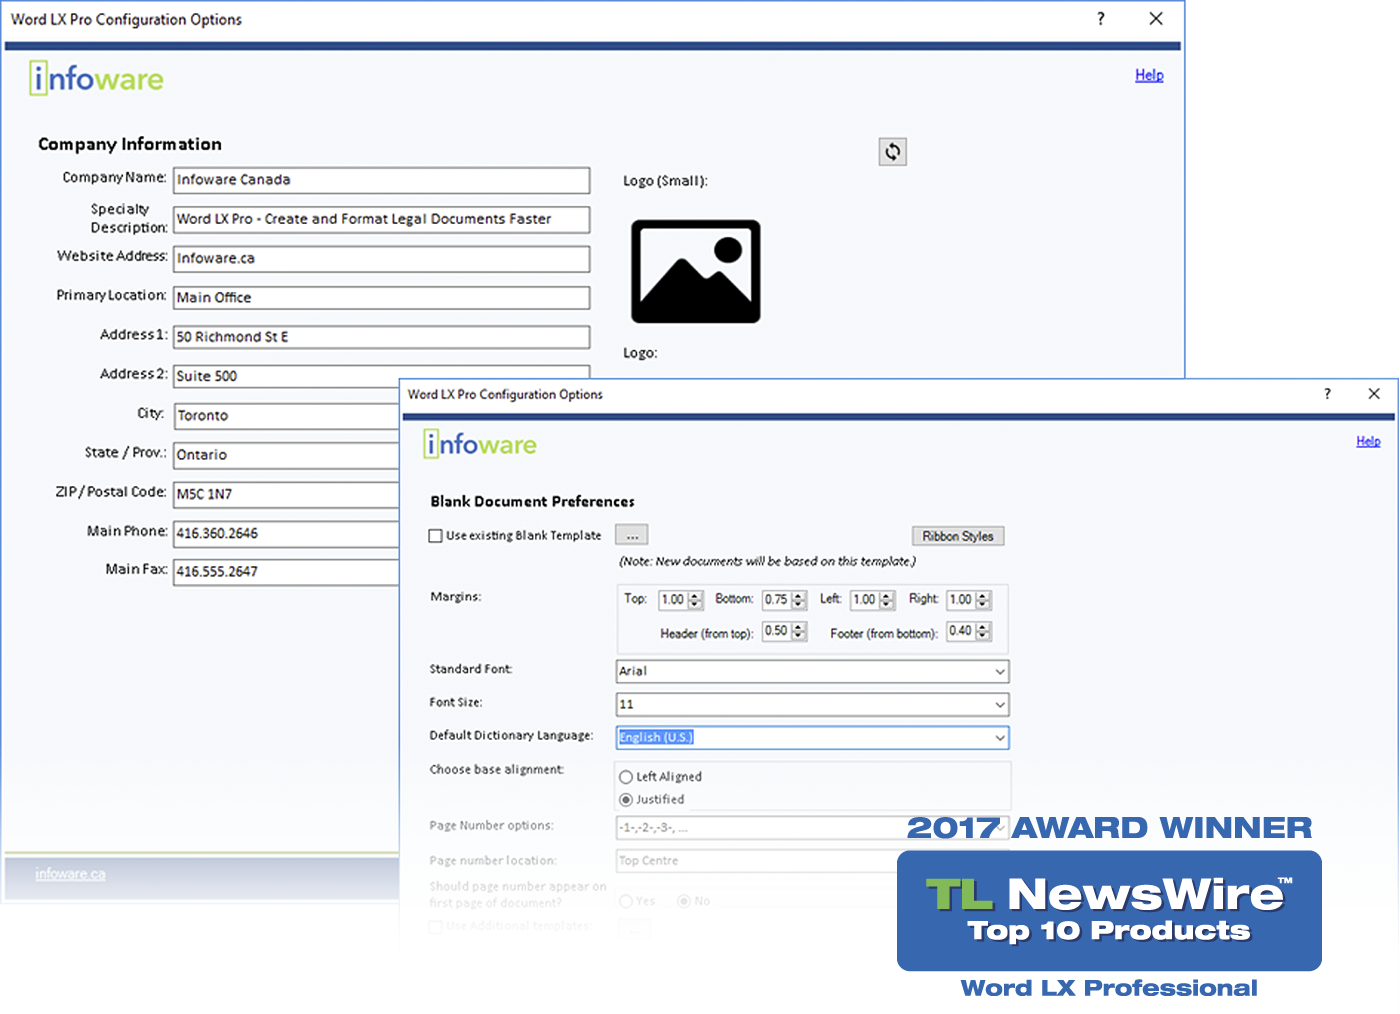 TL NewsWire Top Products Of Awards TechnoLawyer Medium - Legal forms software for attorneys